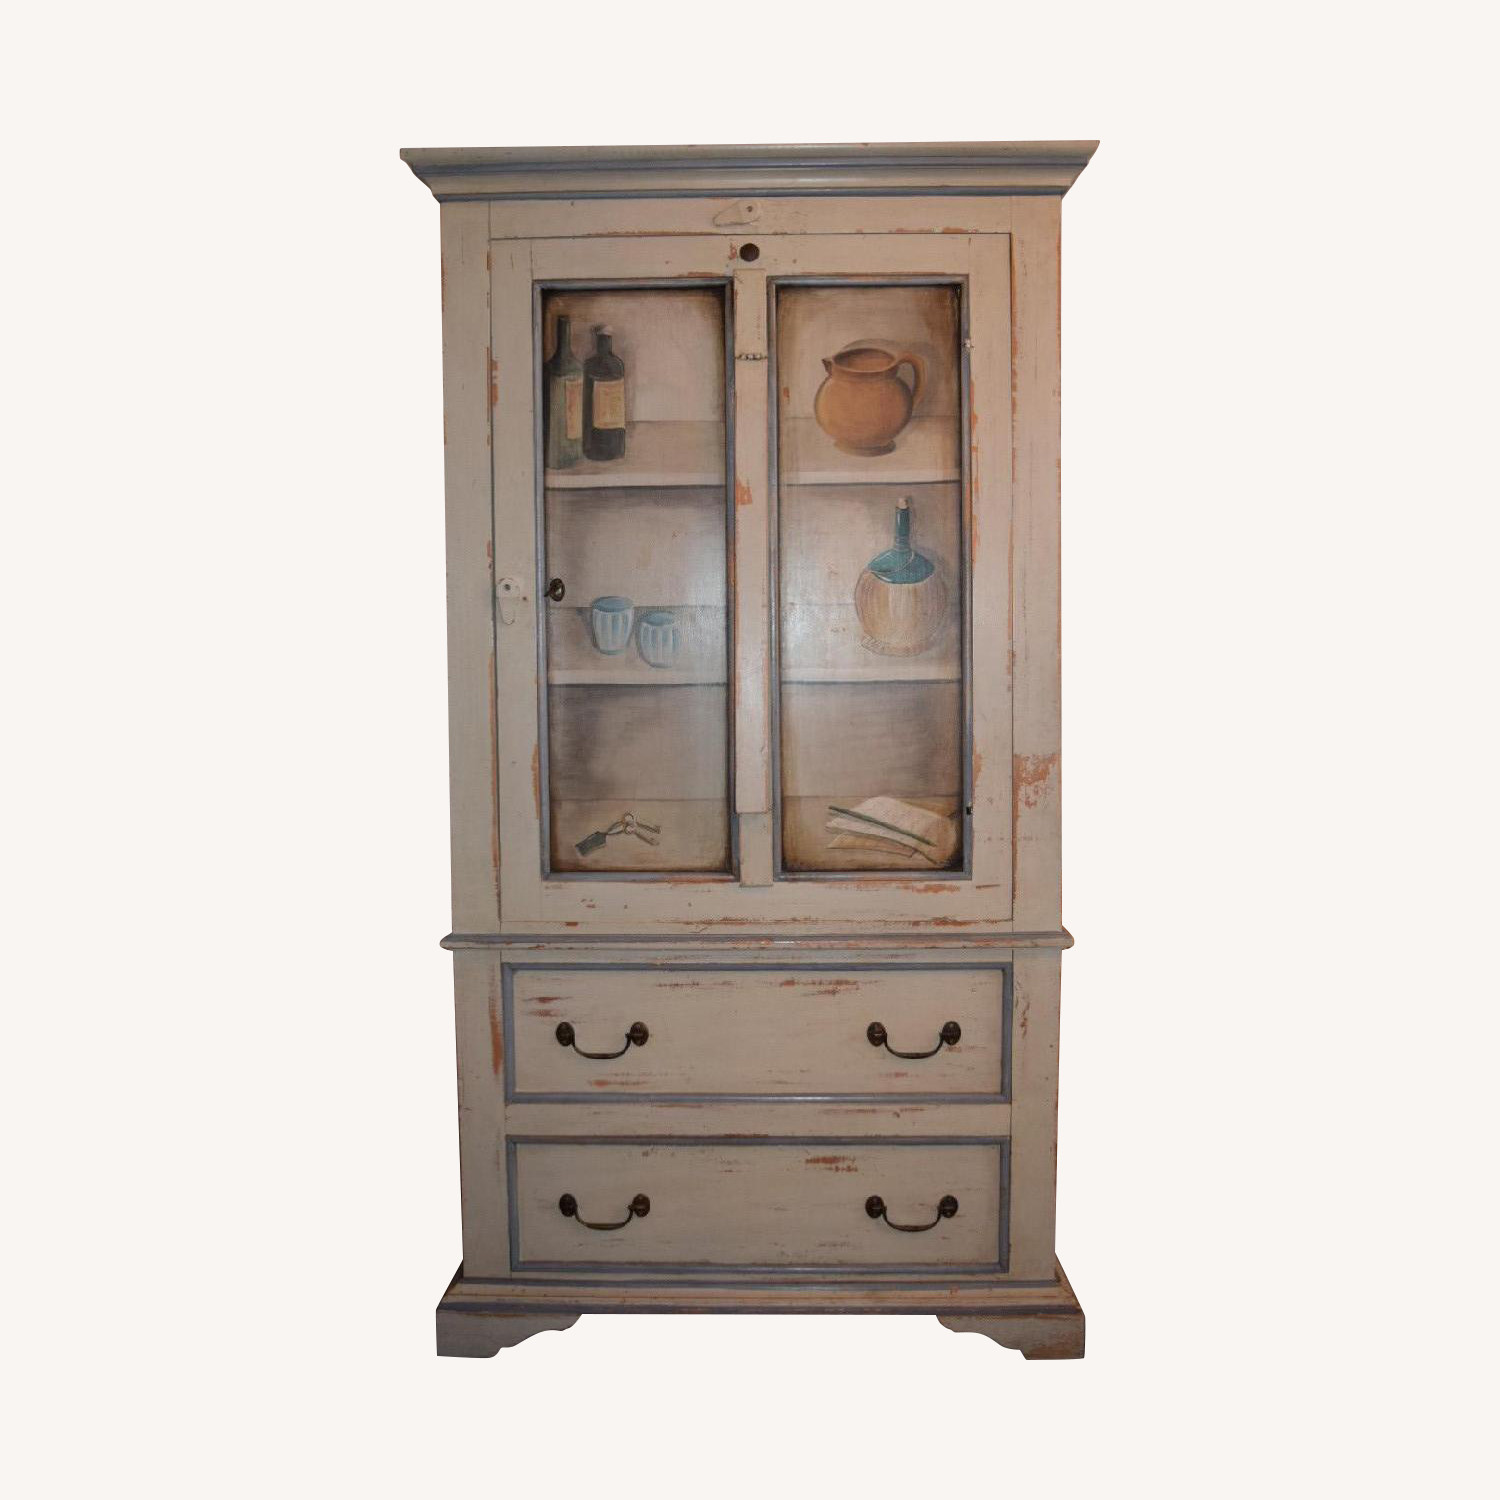 Shabby Chic Hand-Painted Distressed Cabinet